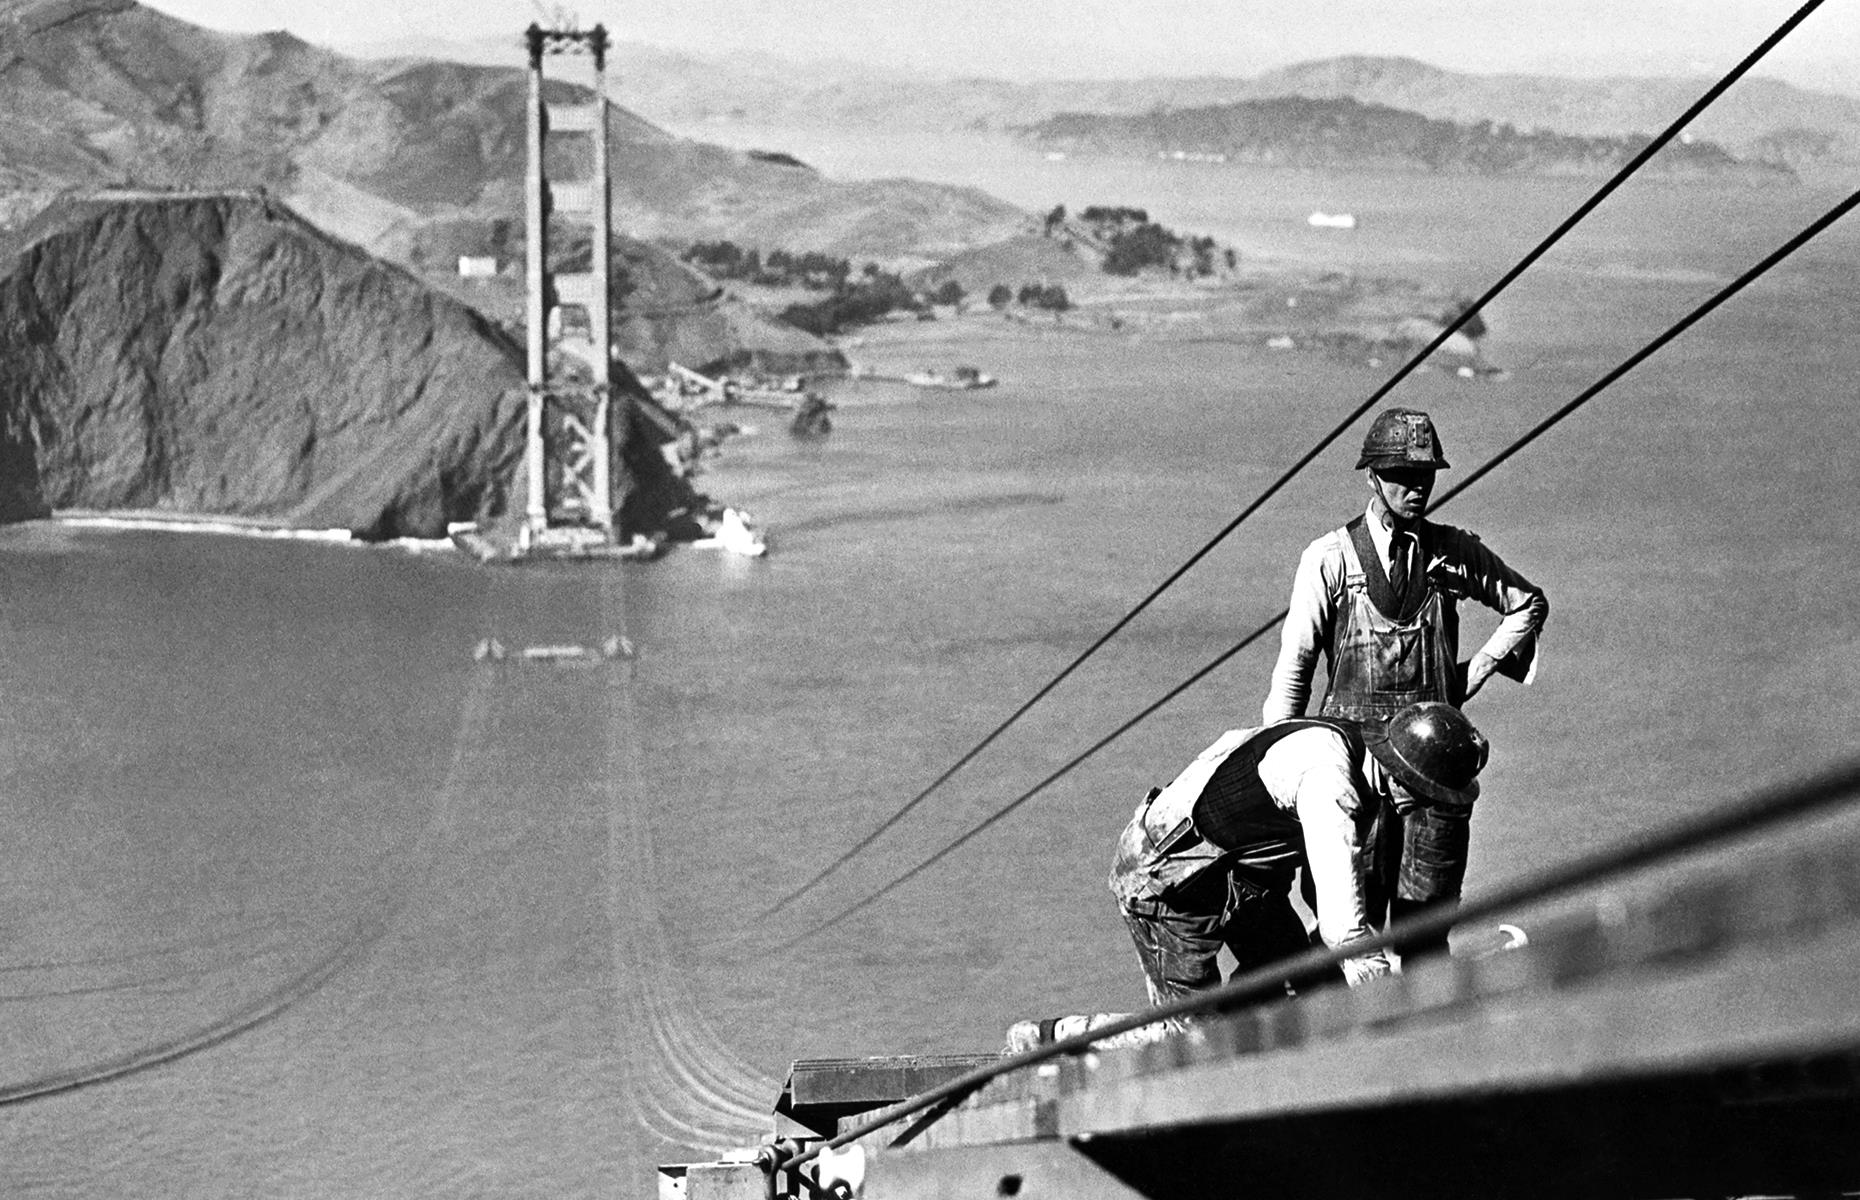 "Slide 40 of 41: When this mighty ""international orange"" structure was first built, it was the longest and tallest suspension bridge in the world. Construction of the bridge, which spans the Golden Gate strait, began in 1933 and proved to be a tumultuous exercise. Eleven people met their deaths during the erection of the landmark, which saw workers brave great heights over swirling currents. Courageous workers are pictured here in 1935, standing on a catwalk as they attach cables from the bridge."